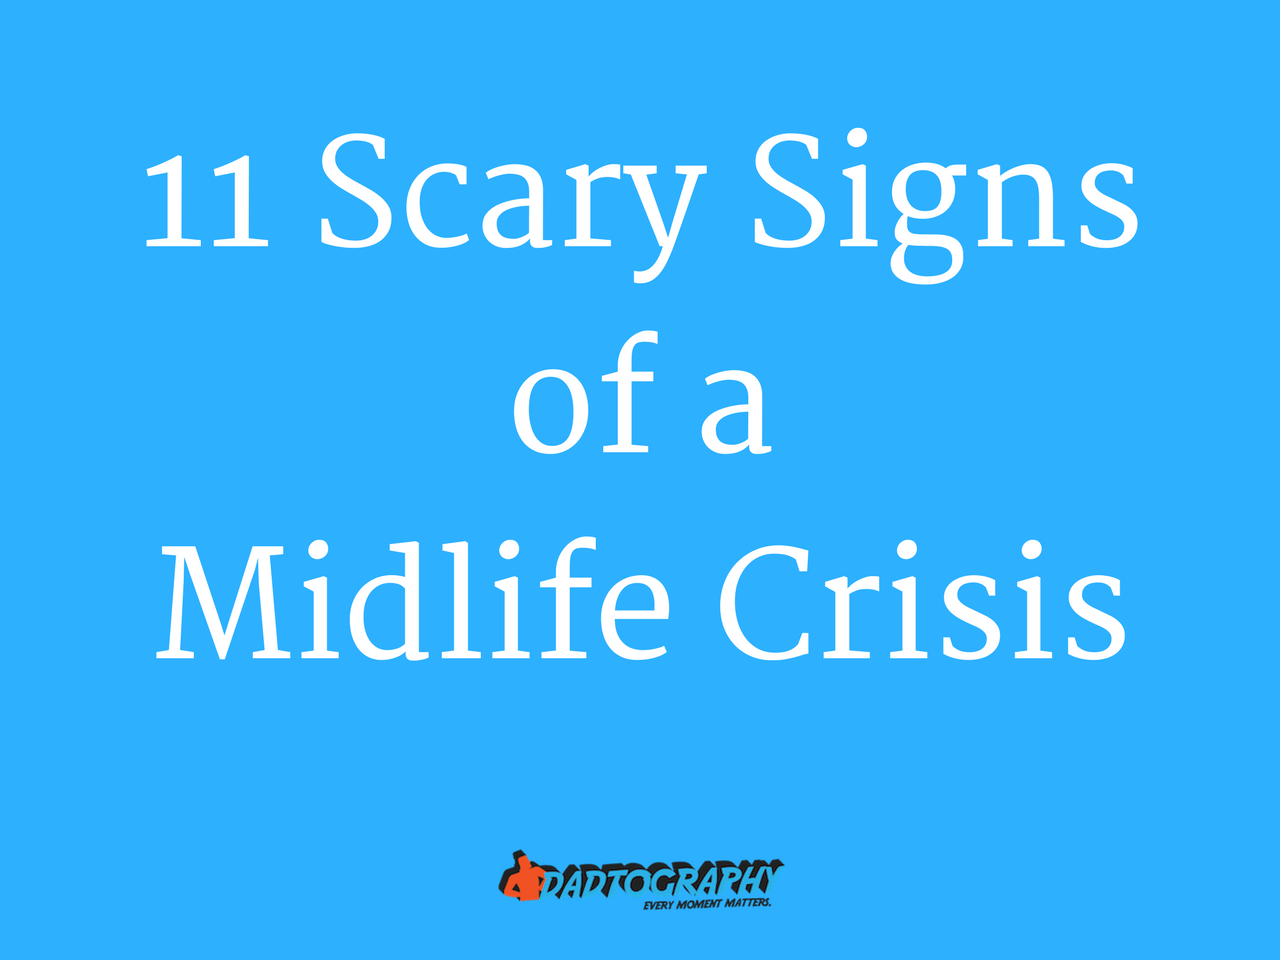 11 Scary Signs of a Midlife Crisis